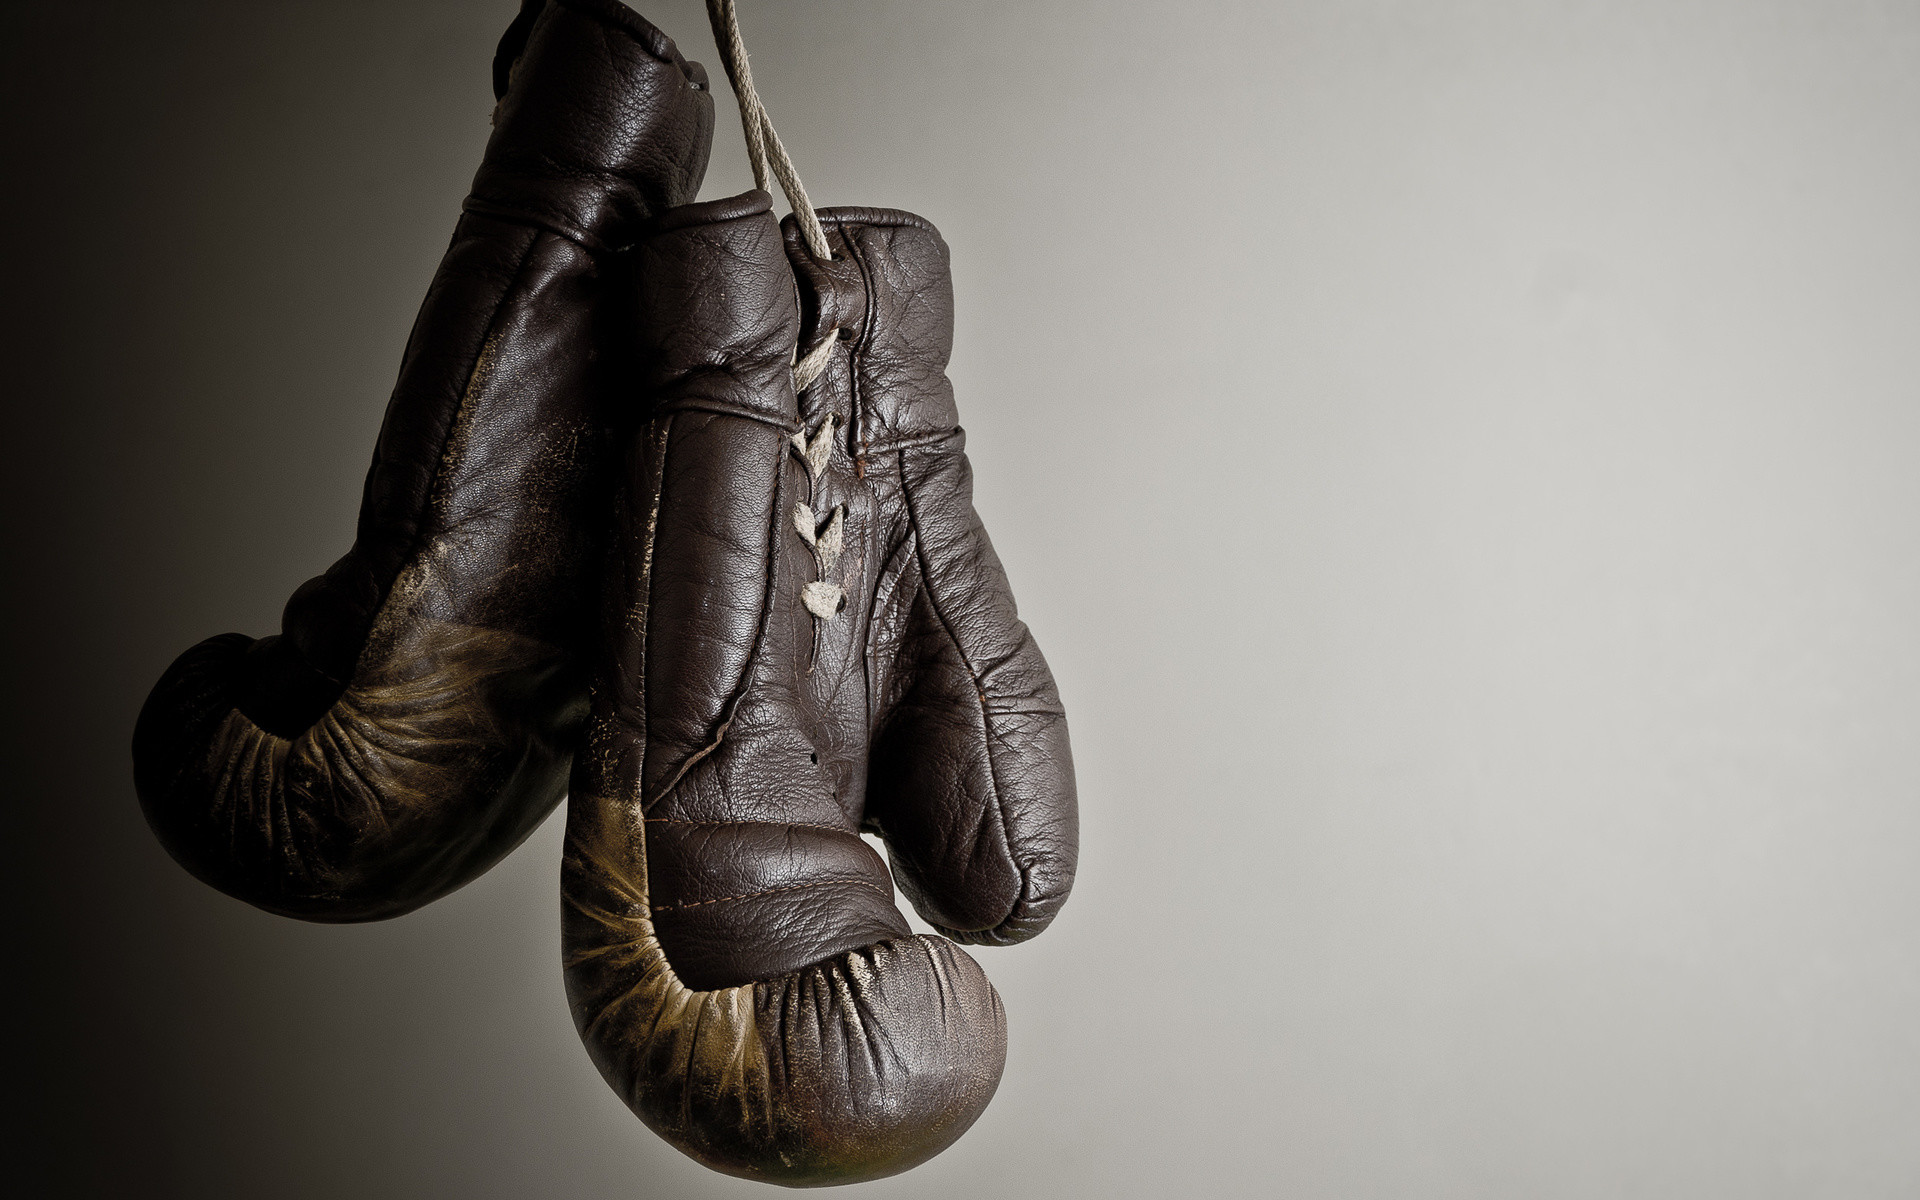 Boxer In Boxing Ring wallpapers | HD Wallpapers | Pinterest | Wallpaper and Hd  wallpaper